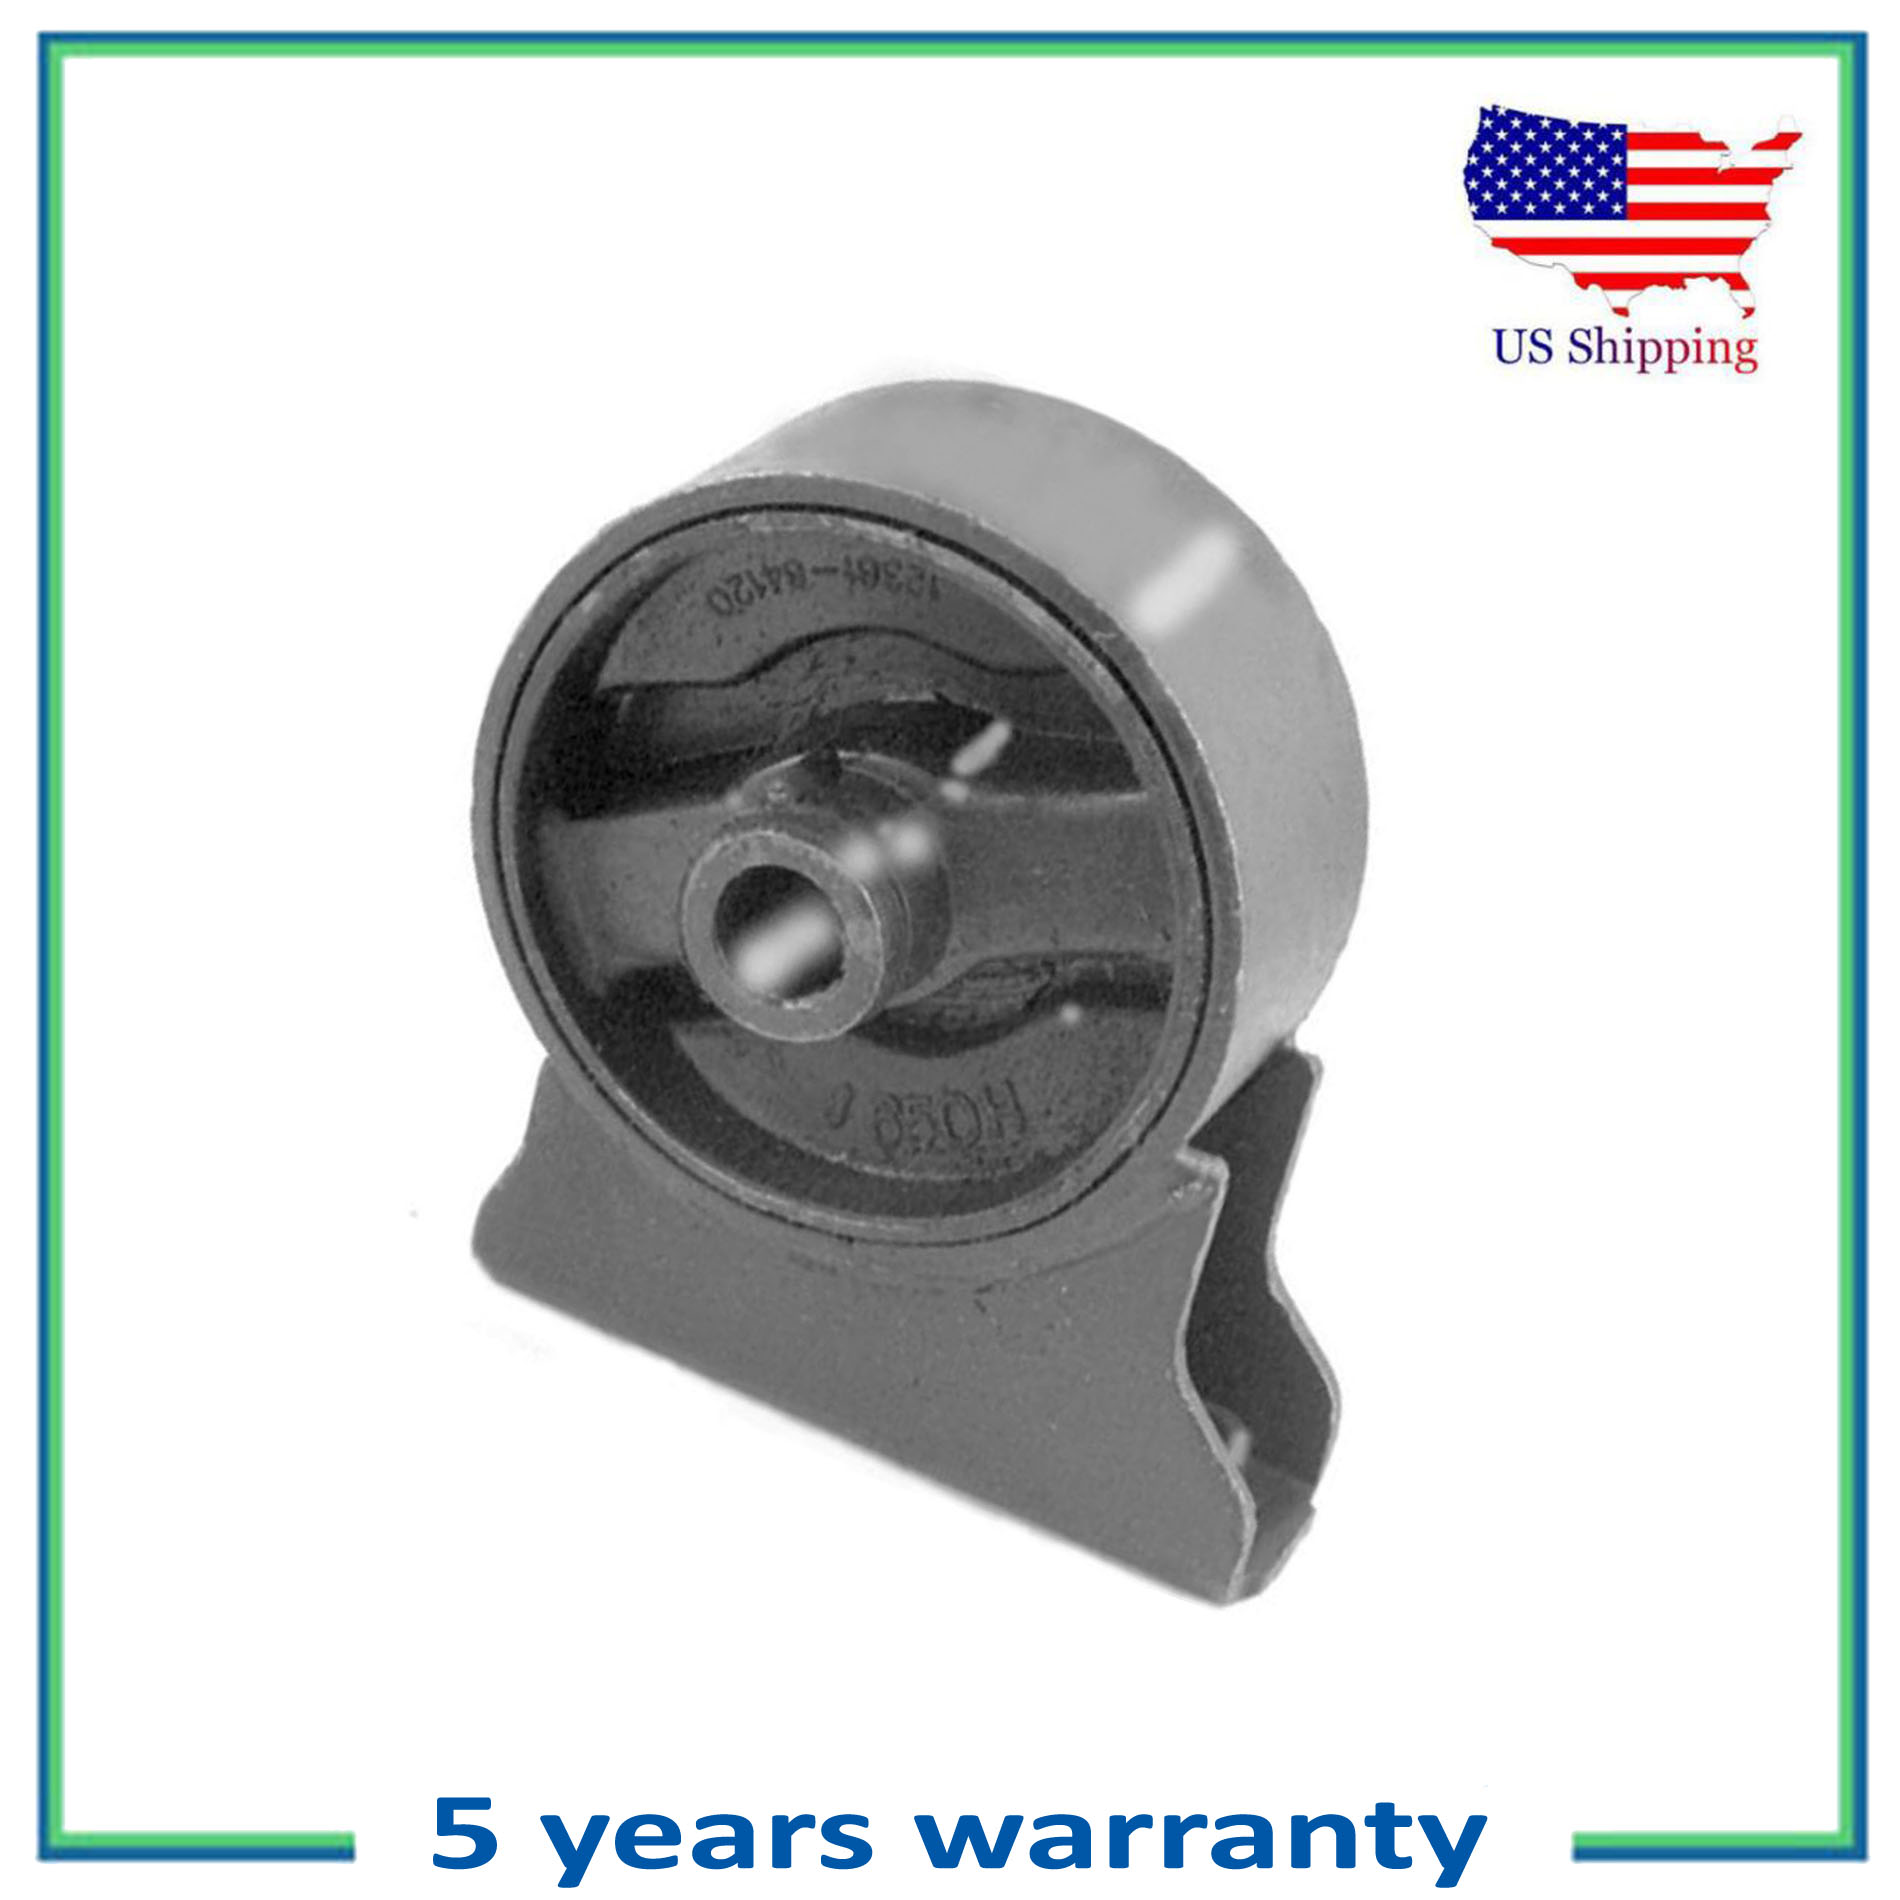 Front Engine Motor Mount 1990-1993 for Toyota Celica 2.2L for Auto 8359 A7269